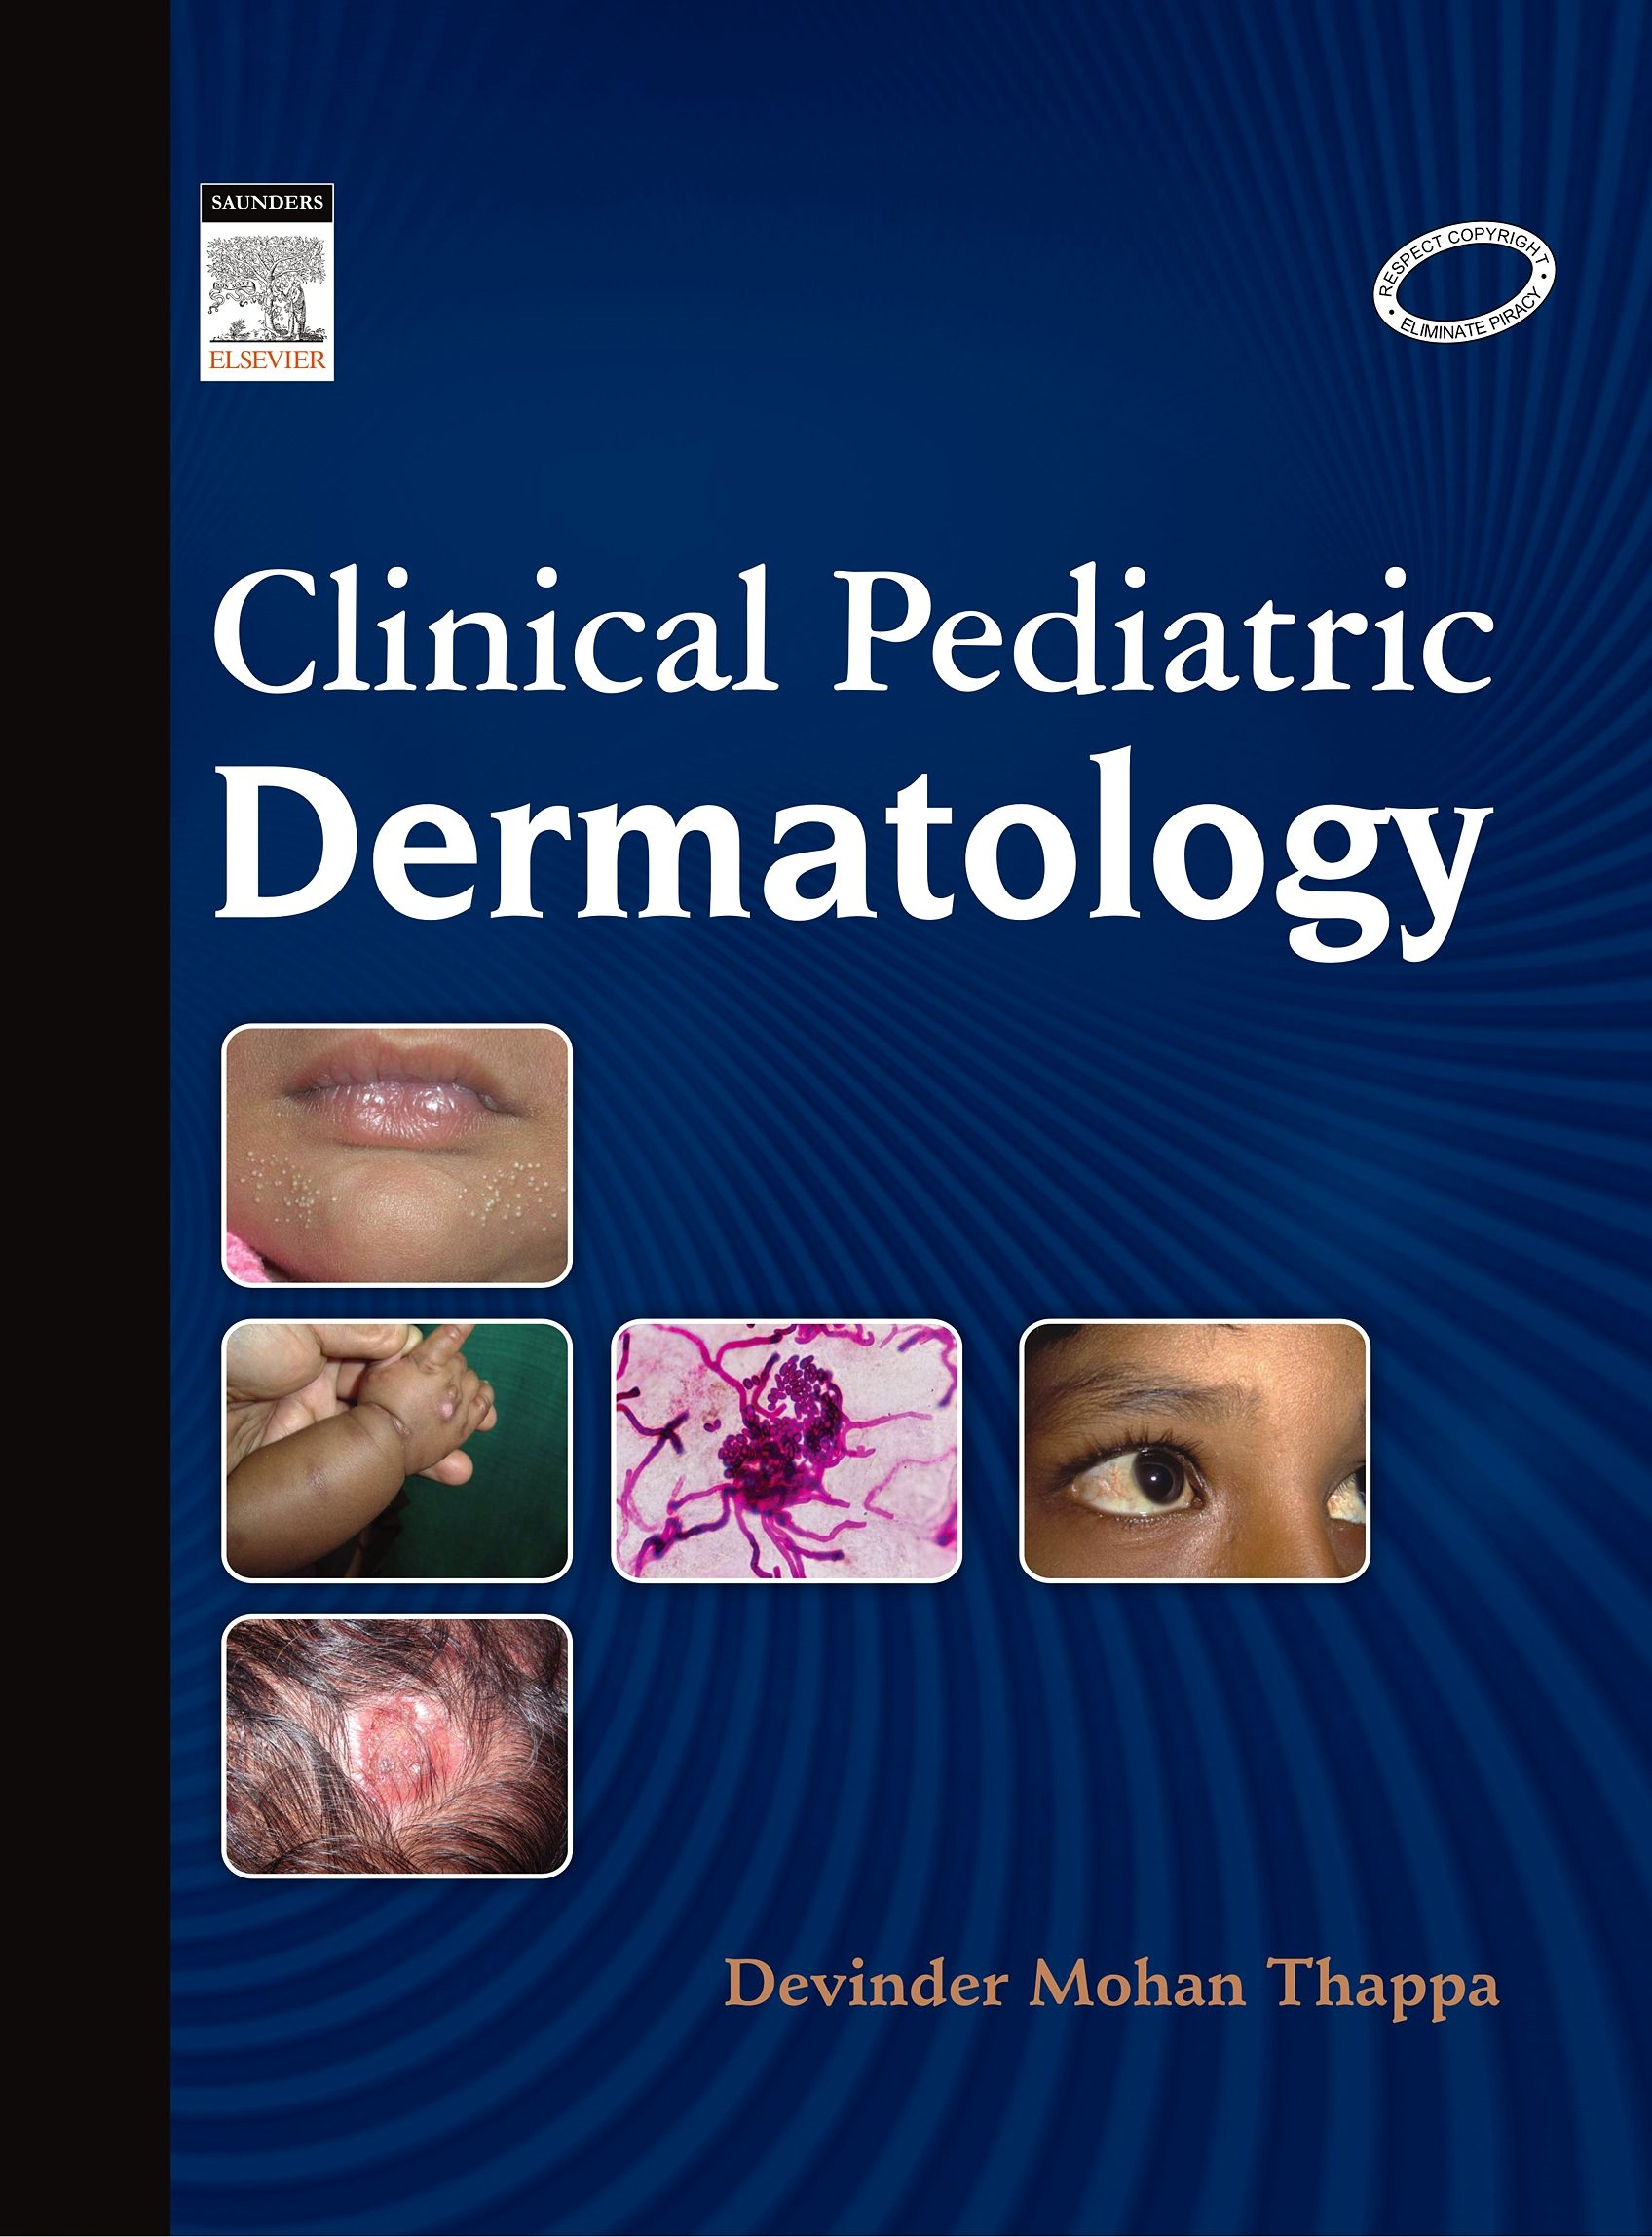 Pediatric dermatology pdf hurwitz